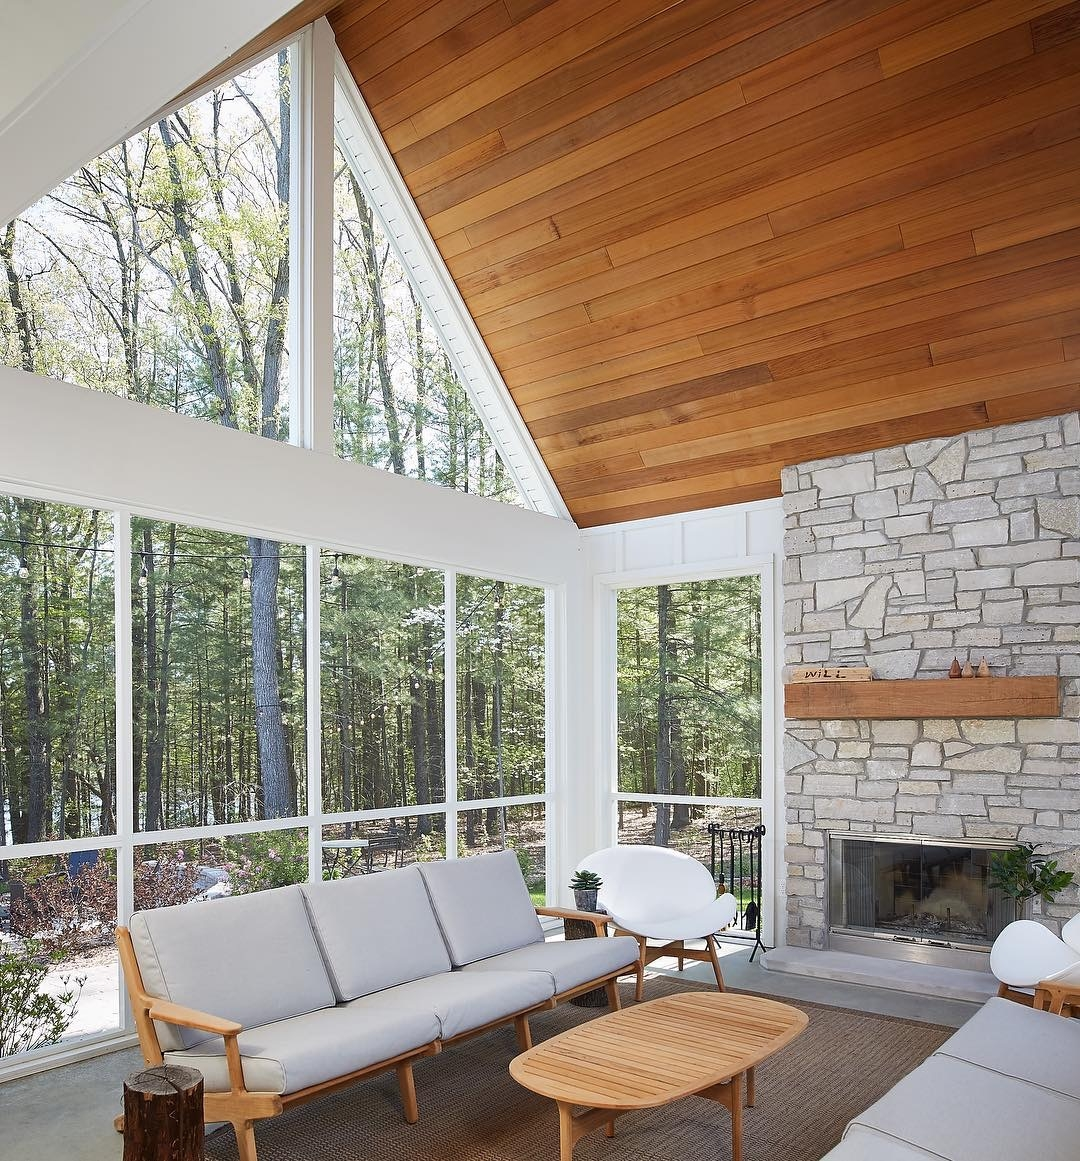 mid-century living room looks out to wooded backyard through wall of windows with triangle windows near ceiling